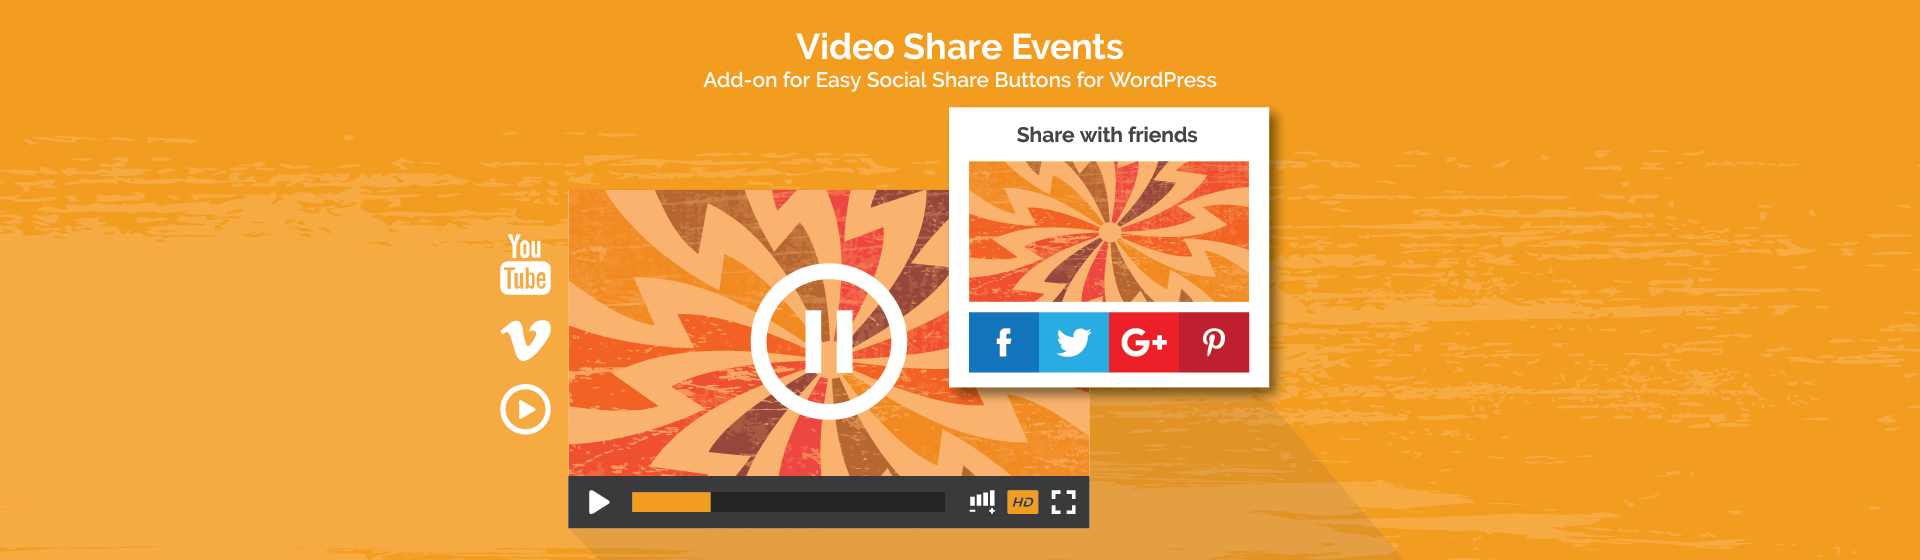 video-share-events-wide-01.png